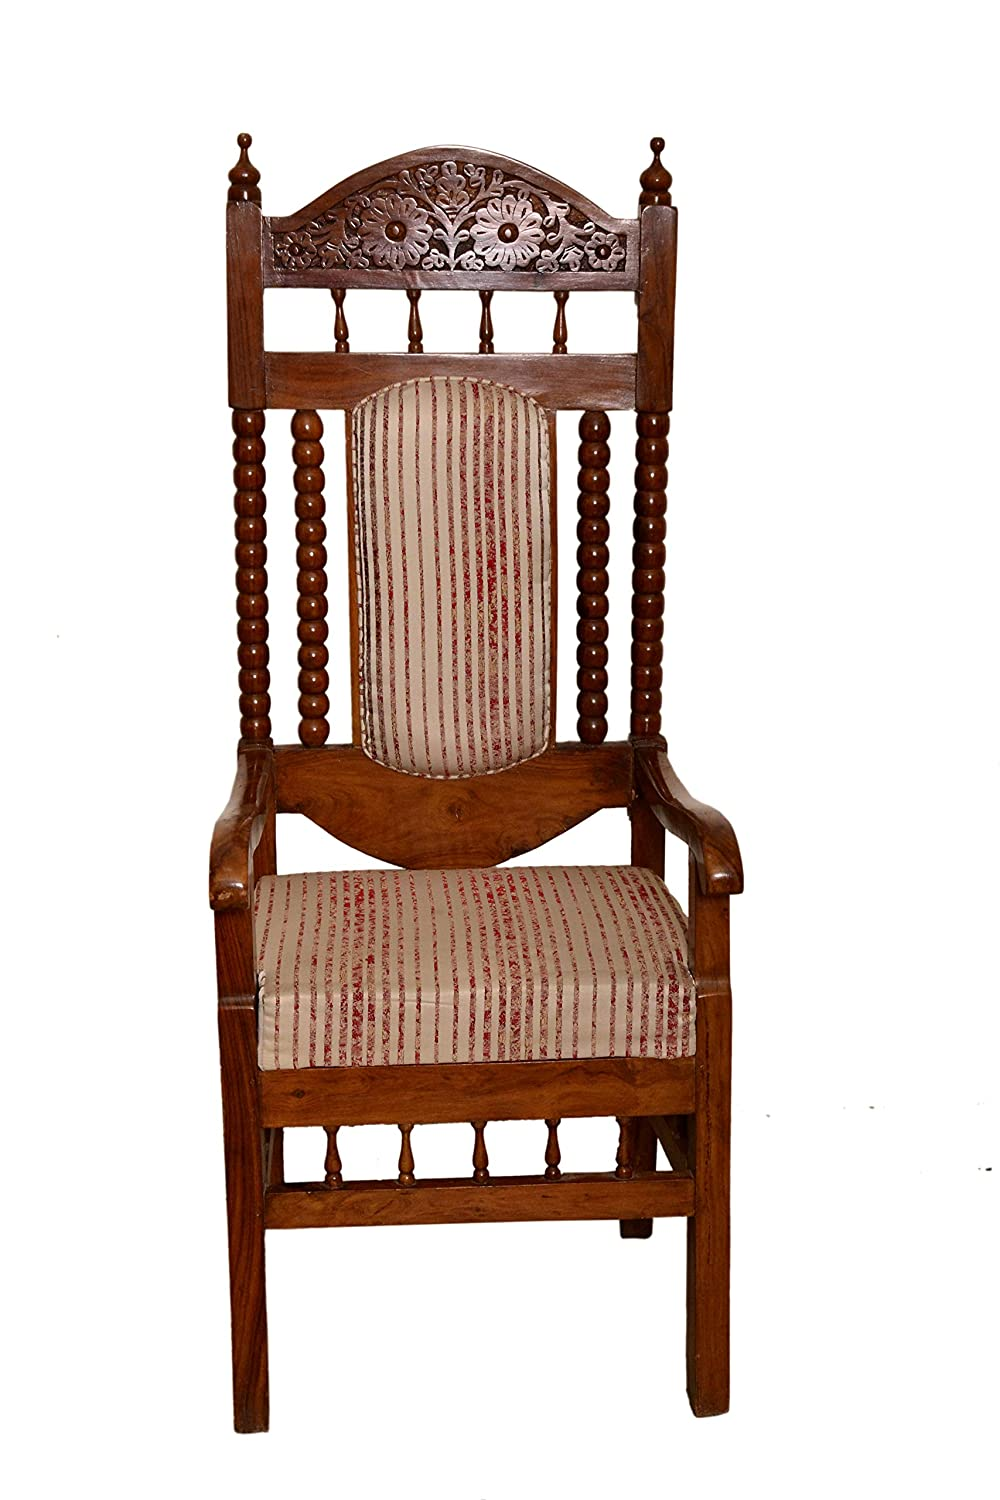 Wood WHIZZ Furniture Office Wooden Chair: Amazon.in: Home & Kitchen